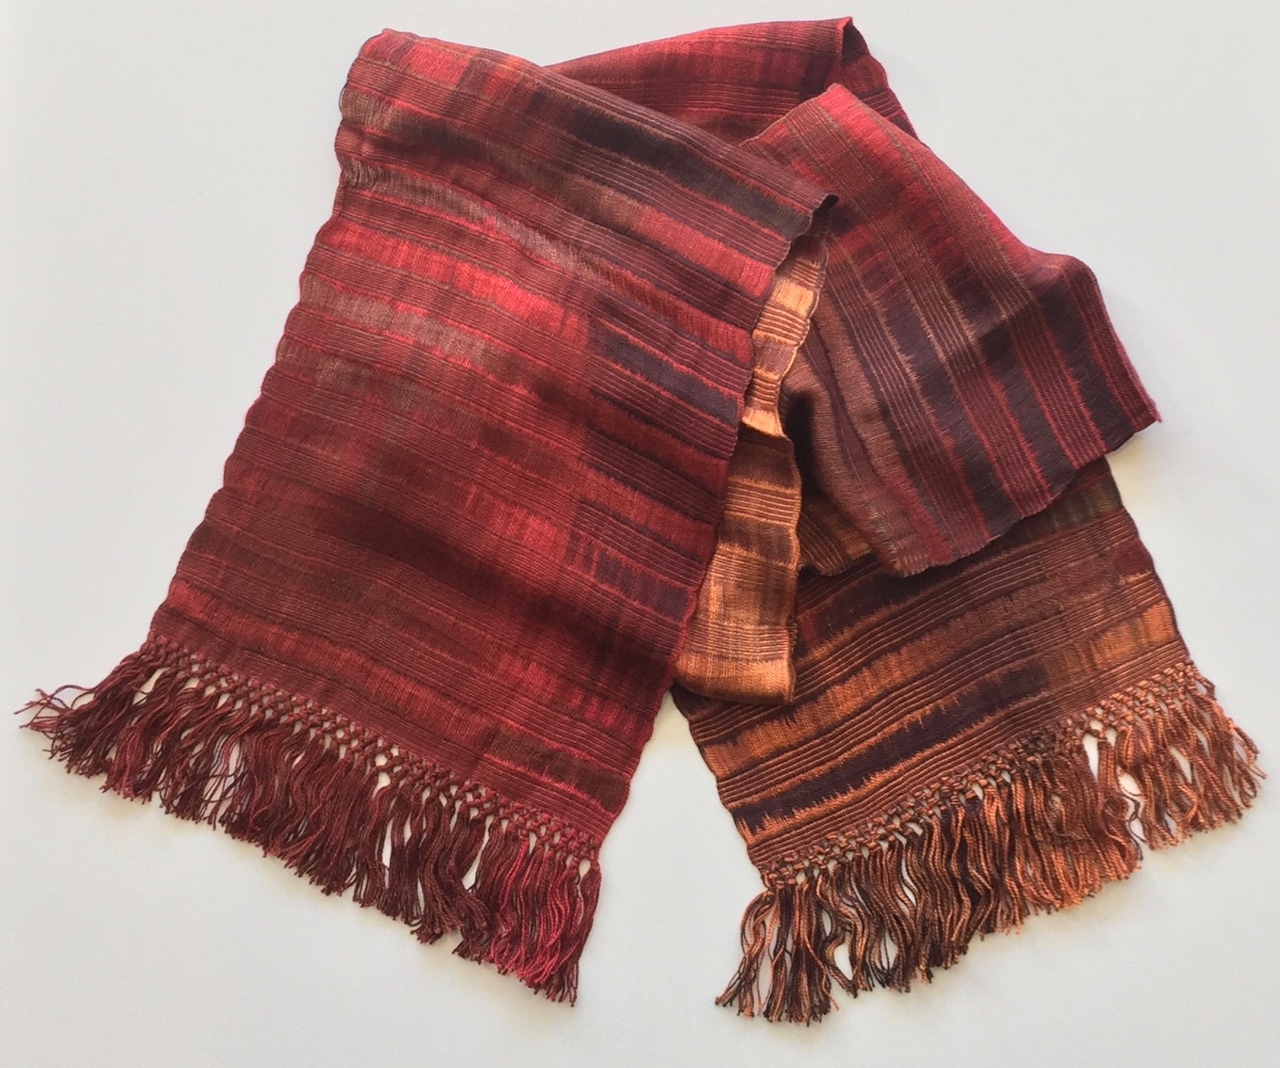 Rich Reds and Copper - Lightweight Bamboo Handwoven Scarf, Open Weave, 8